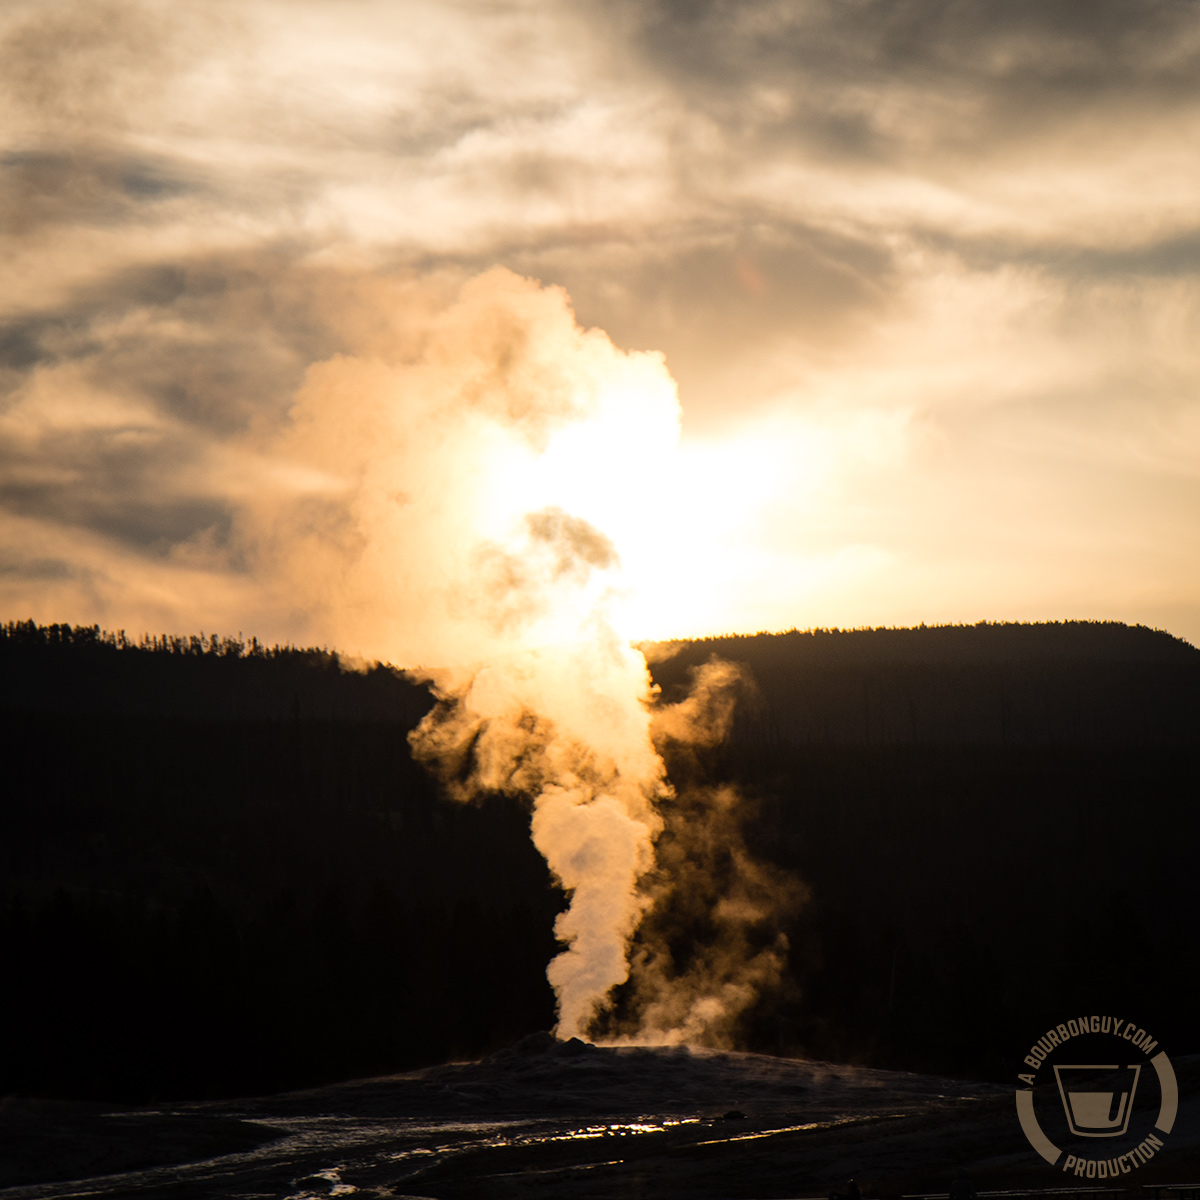 Image: a geyser in Yellowstone National Park at sunrise